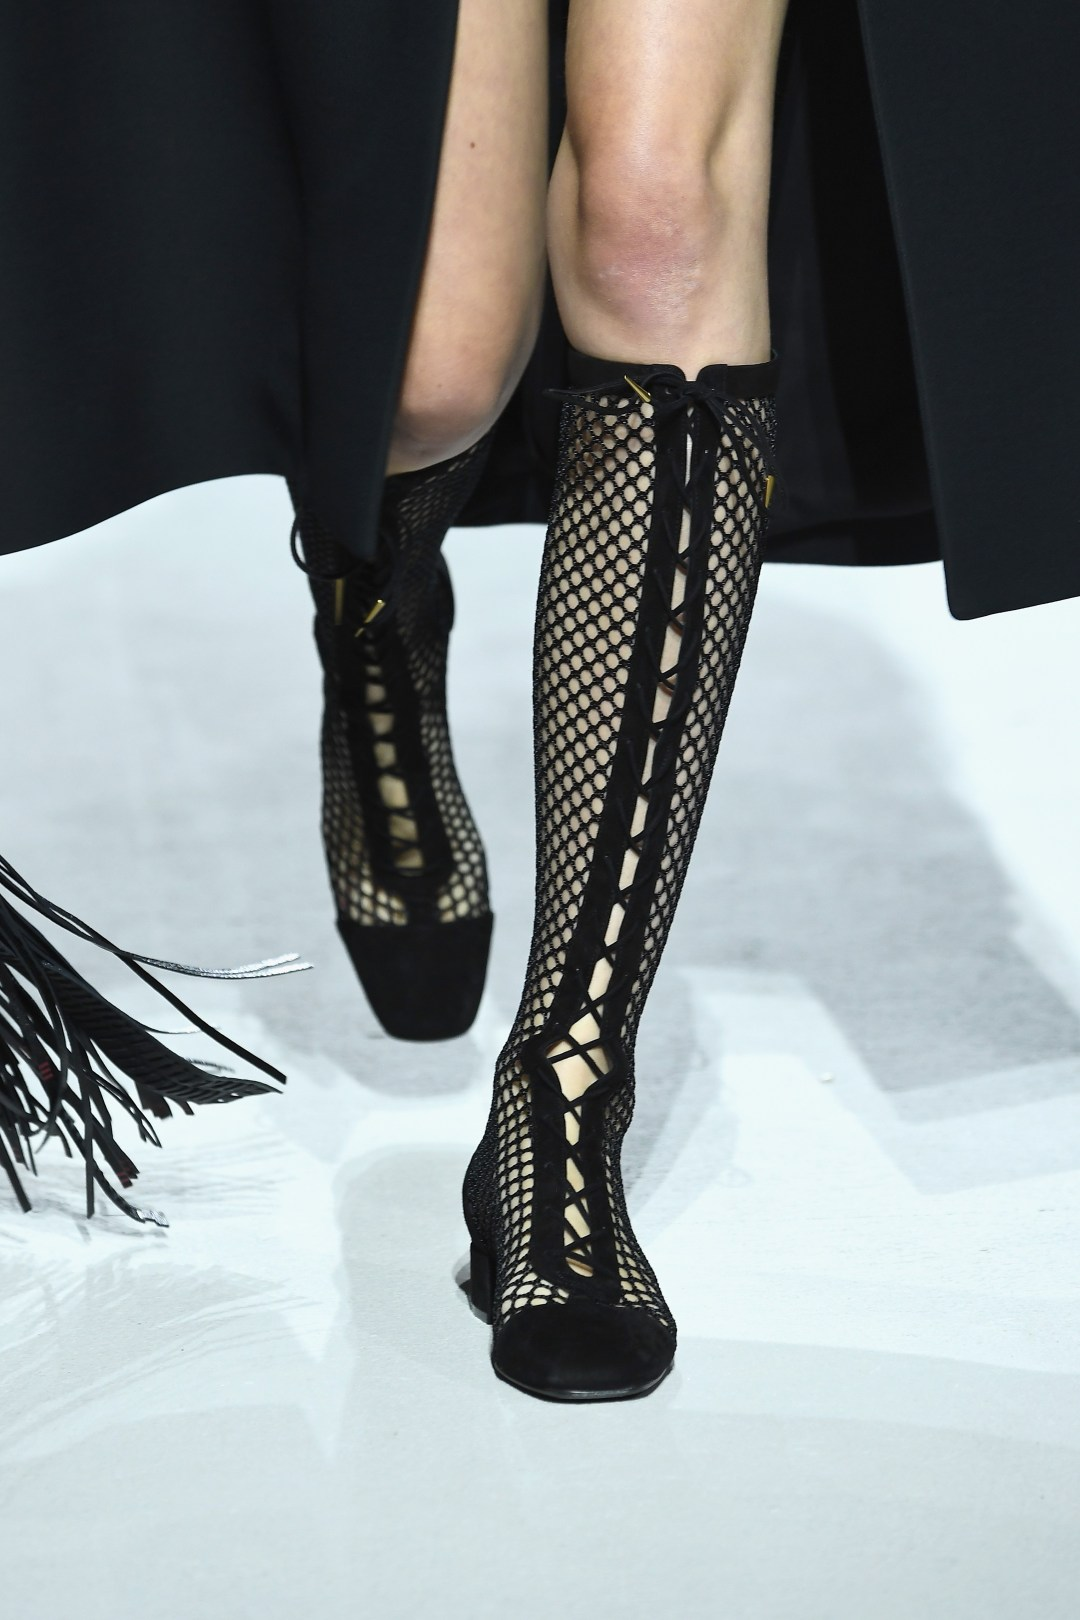 PARIS, FRANCE - SEPTEMBER 26: A model, shoe detail, walks the runway during the Christian Dior show as part of the Paris Fashion Week Womenswear Spring/Summer 2018 on September 26, 2017 in Paris, France. (Photo by Pascal Le Segretain/Getty Images) (Foto: Getty Images)